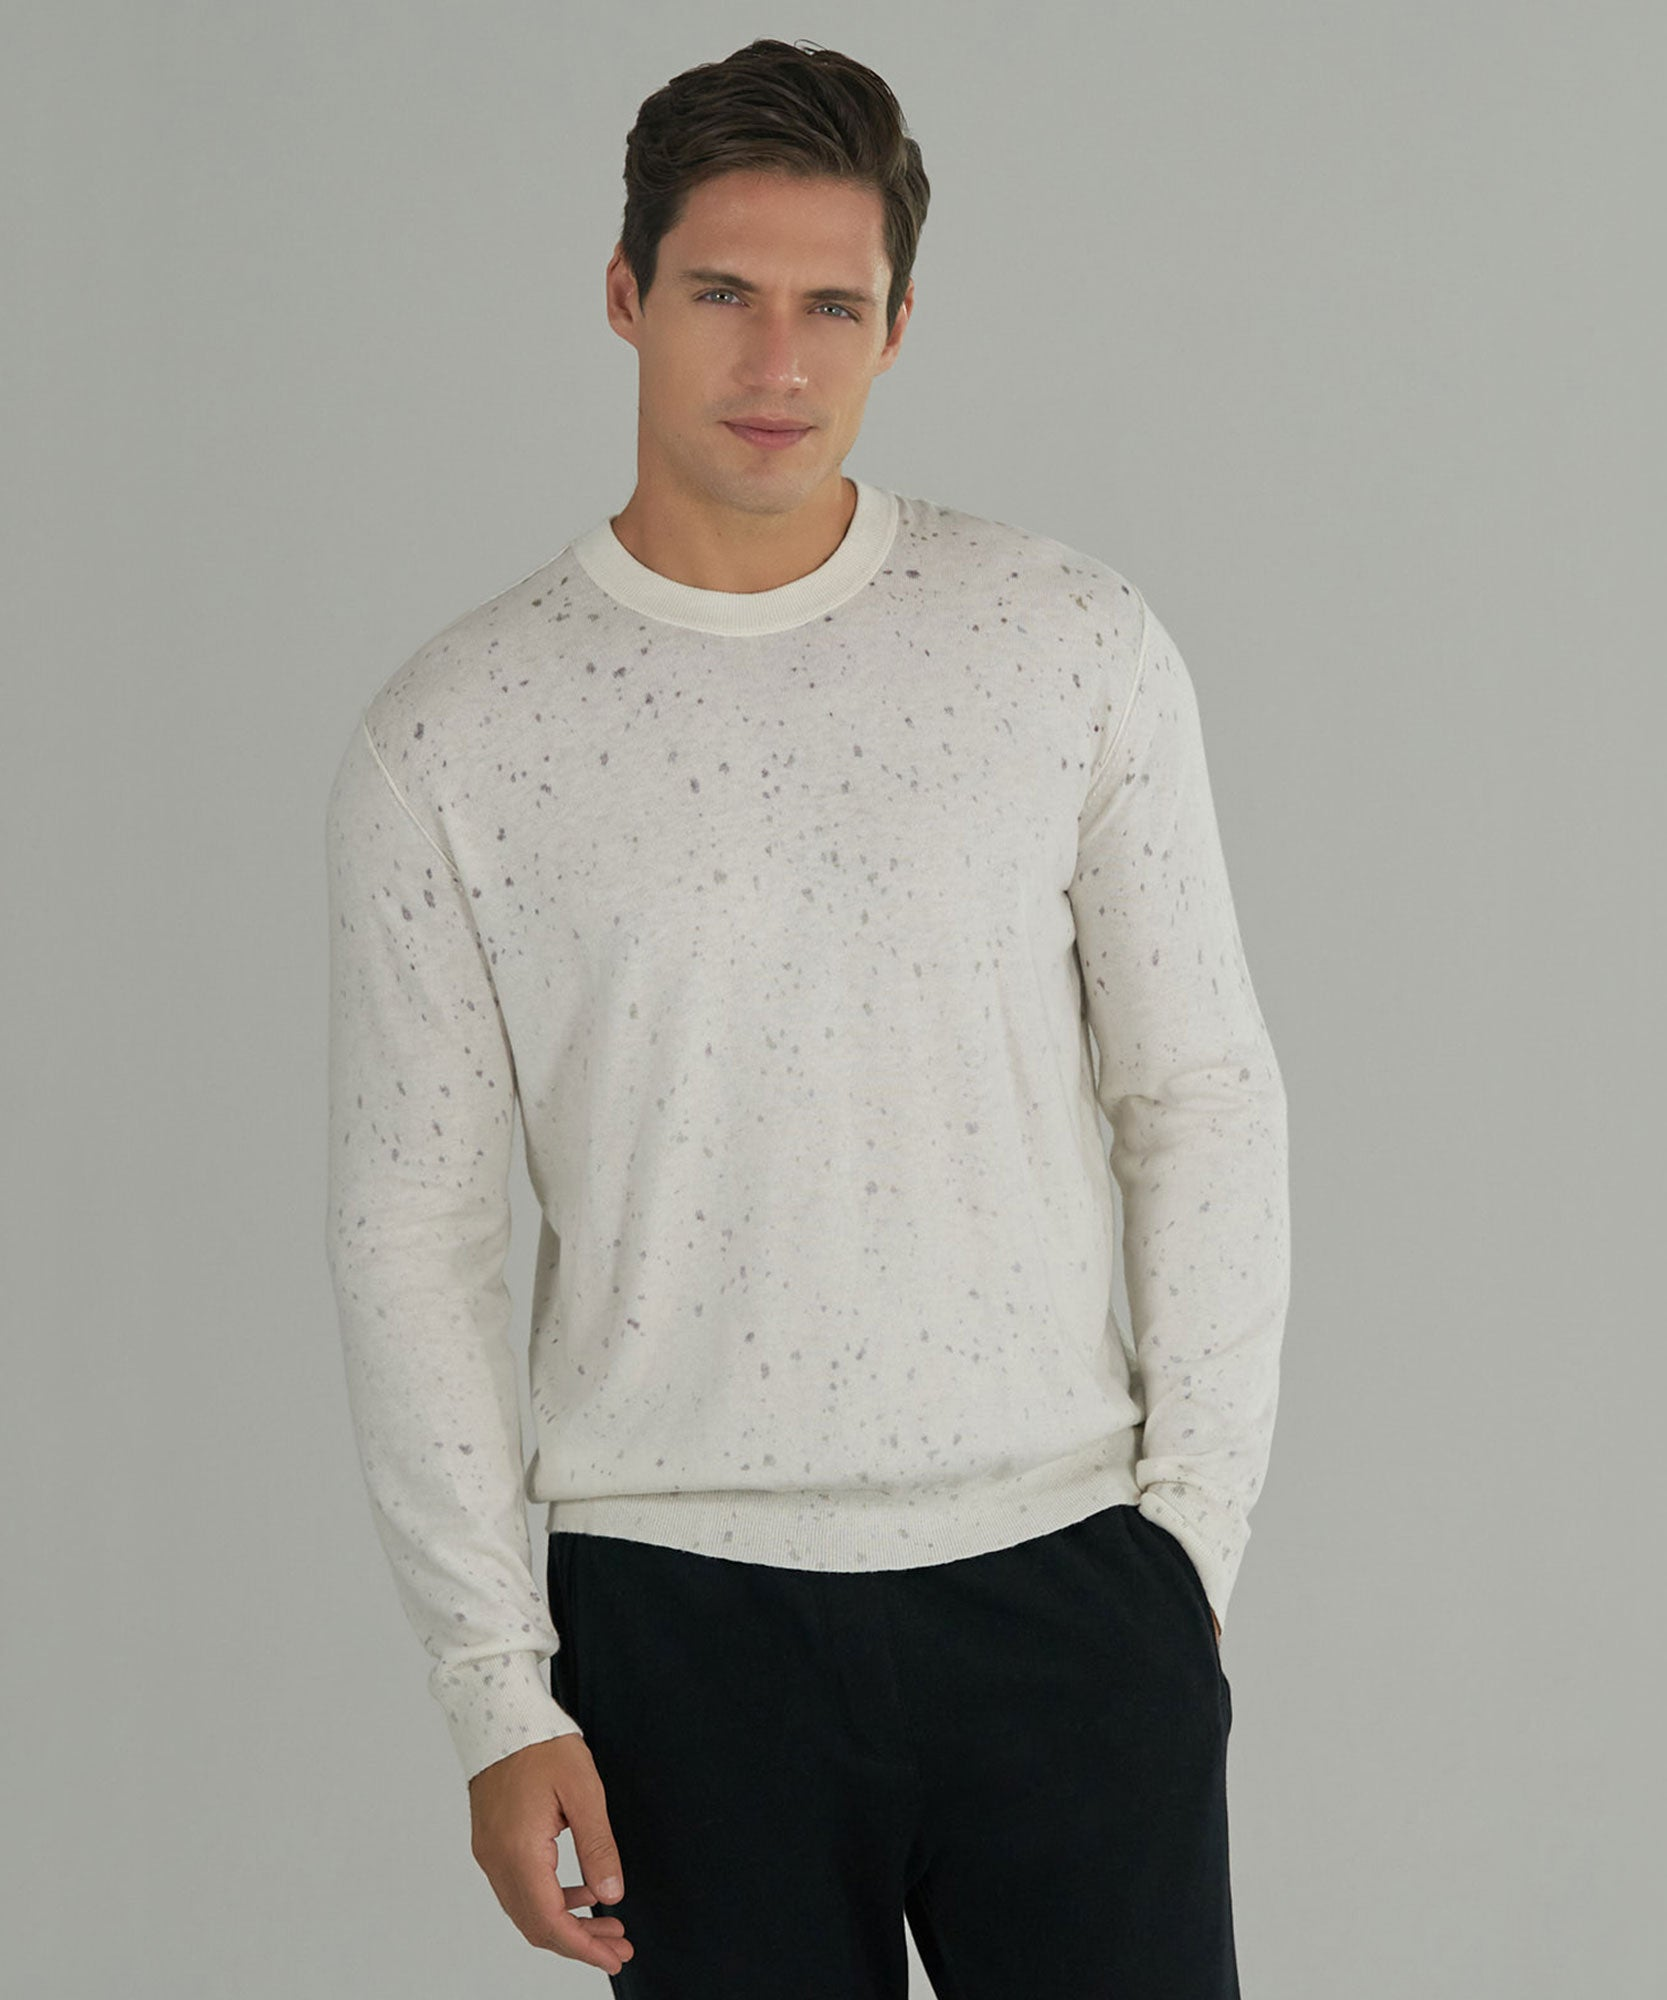 Chalk/ Grape Cotton Cashmere Splatter Print Sweater - Men's Sweater by ATM Anthony Thomas Melillo